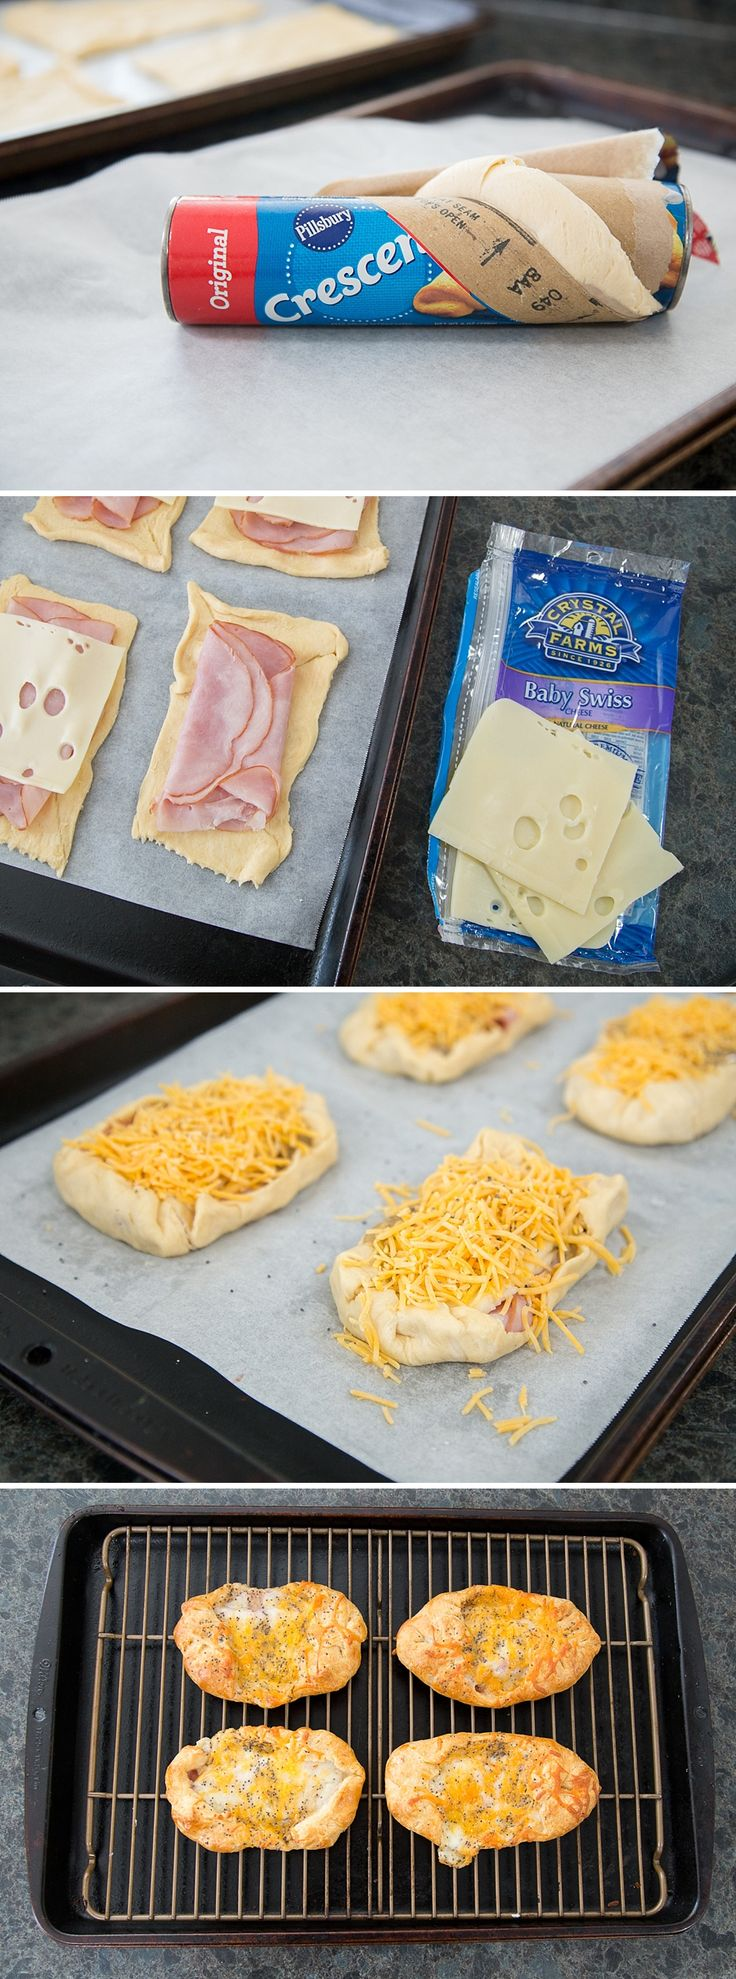 These Ham & Cheese Crescent Puffs are the perfect family-friendly brunch recipe. Wether you're looking for a delicious breakfast snack or something special for a holiday party, this simple recipe is perfect. *This sounds amazing. Love the mustard glaze recipe too. Bookmarking this for Easter.